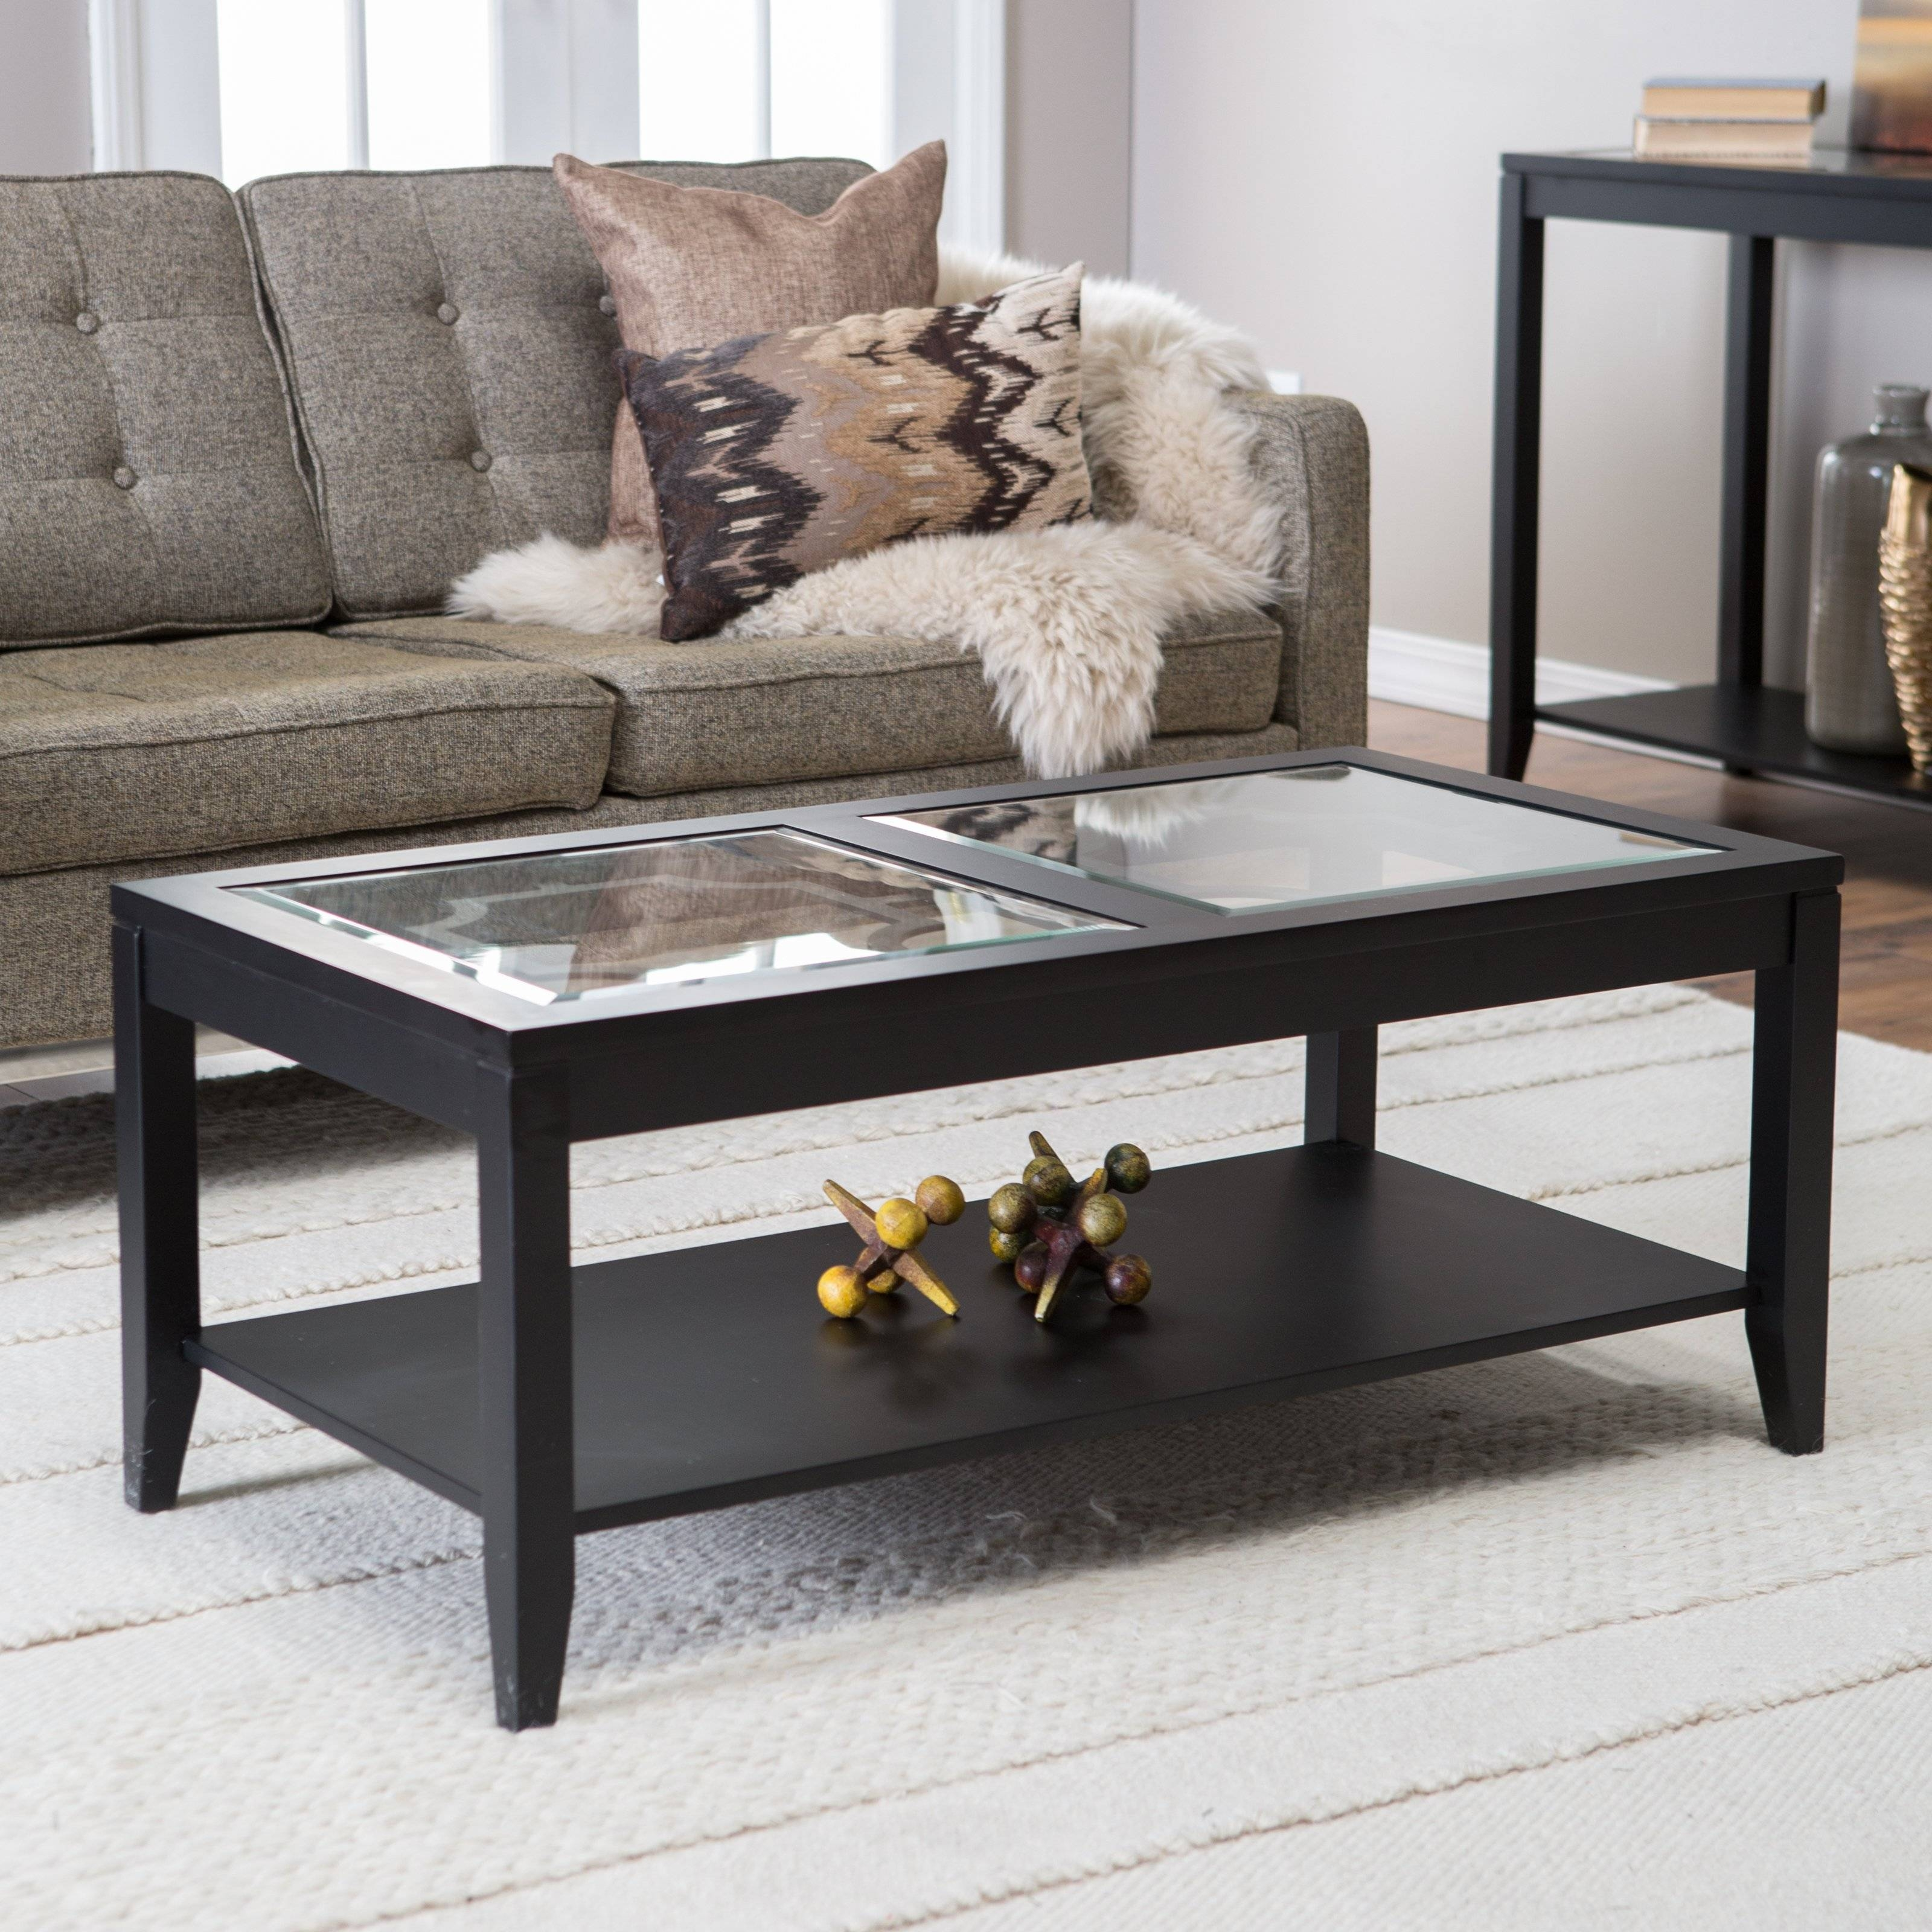 Hodedah Glass Rectangle Coffee Table, Black - Walmart intended for Rectangle Glass Coffee Table (Image 8 of 15)